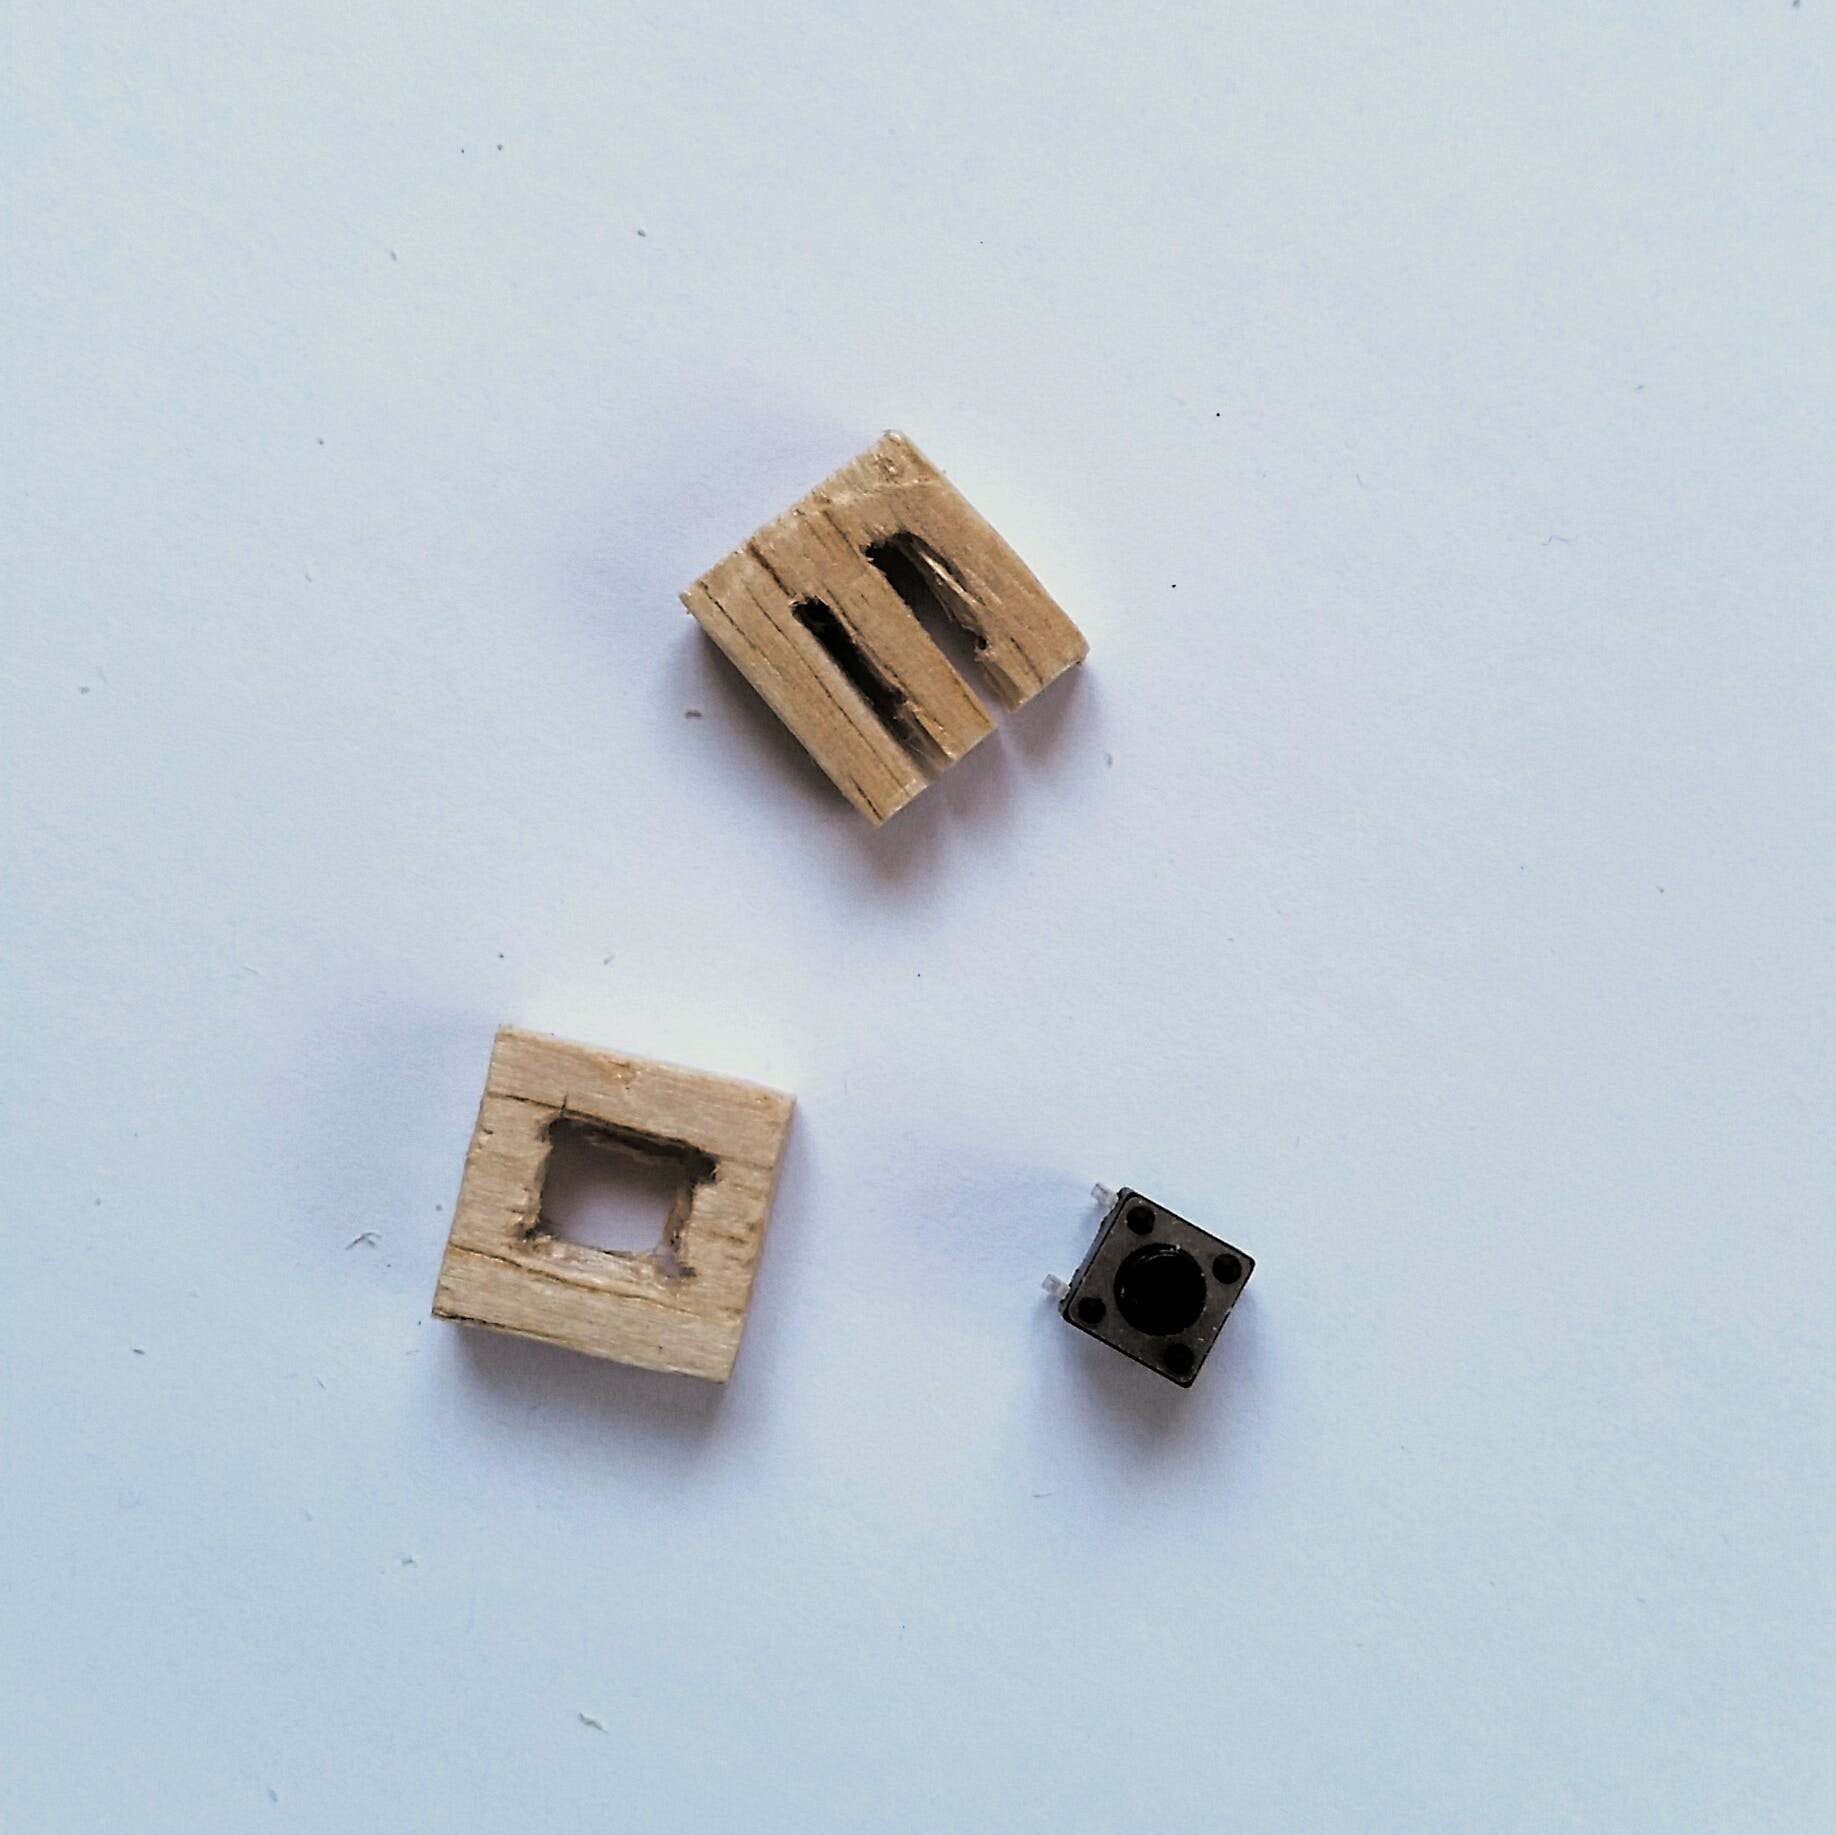 Cut one set of holes to a square, turn the others into a pair of slots.